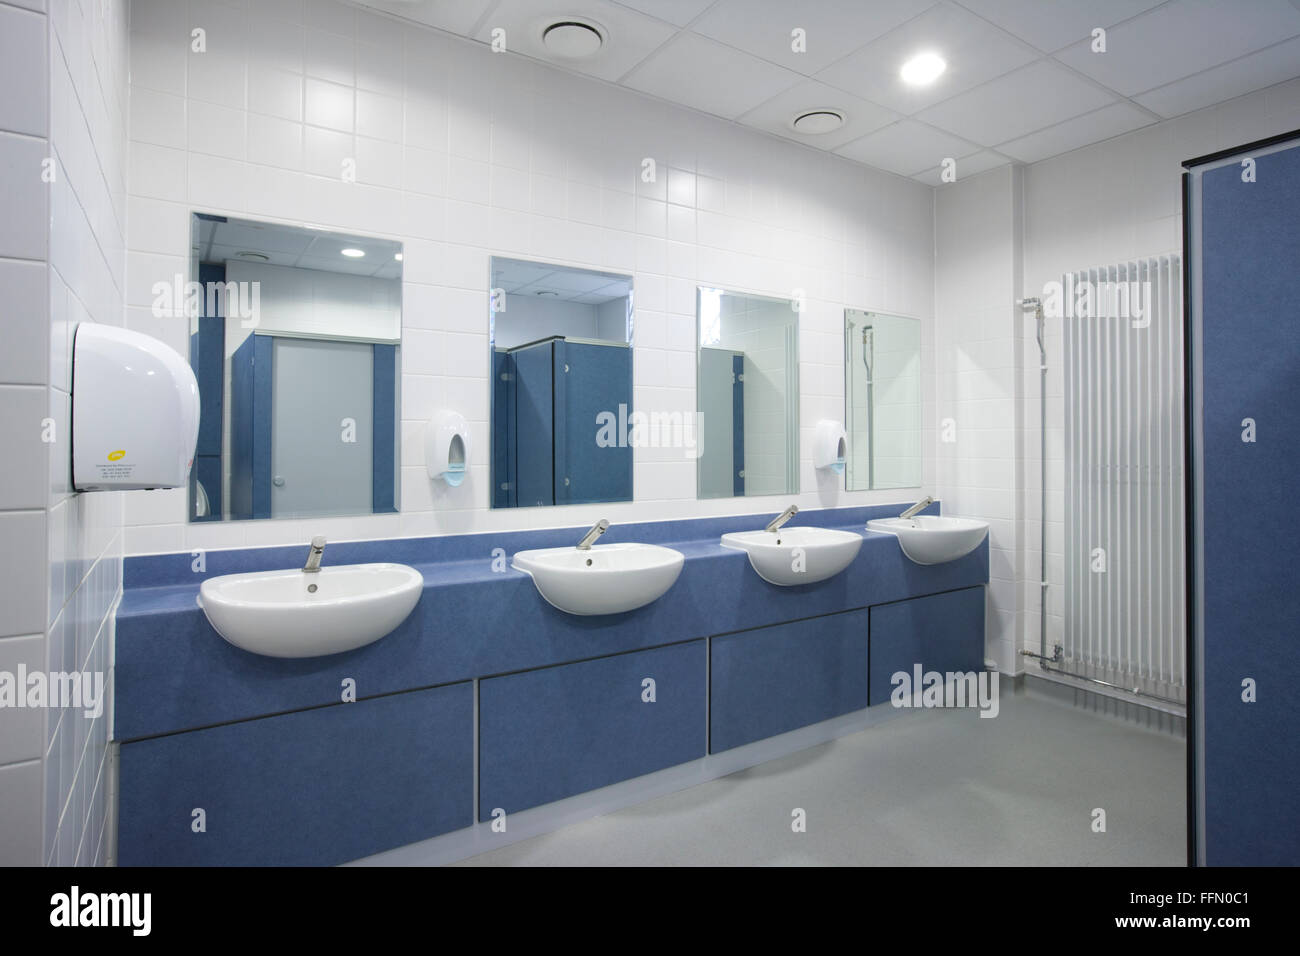 Modern Office Toilets And Washroom Stock Photo Royalty Free Image 95733009 Alamy